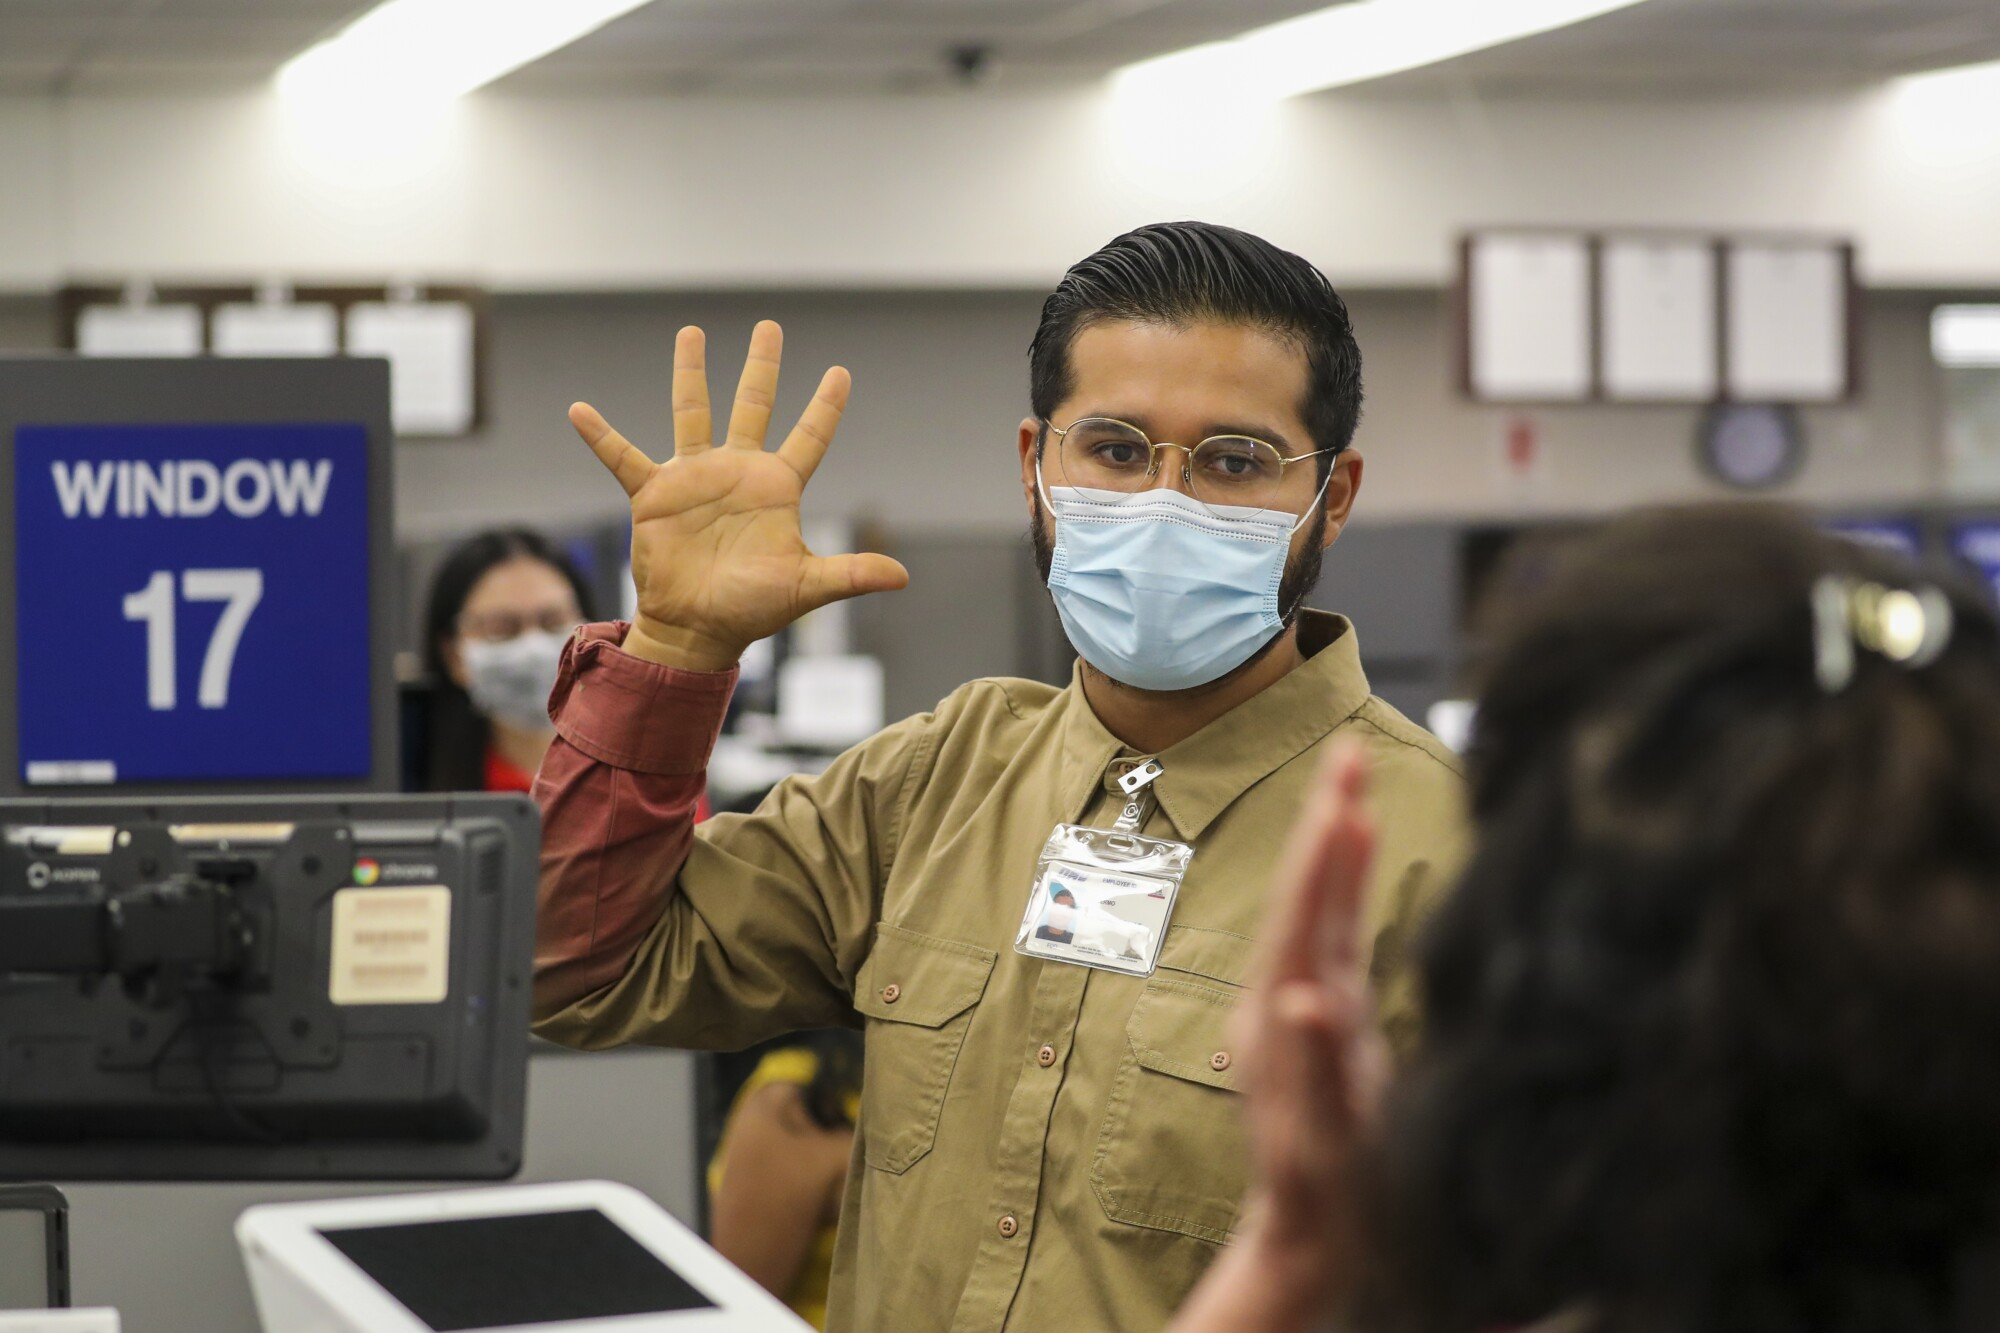 A DMV worker wearing a mask and glasses raises his hand with his fingers spread apart while administering a vision test